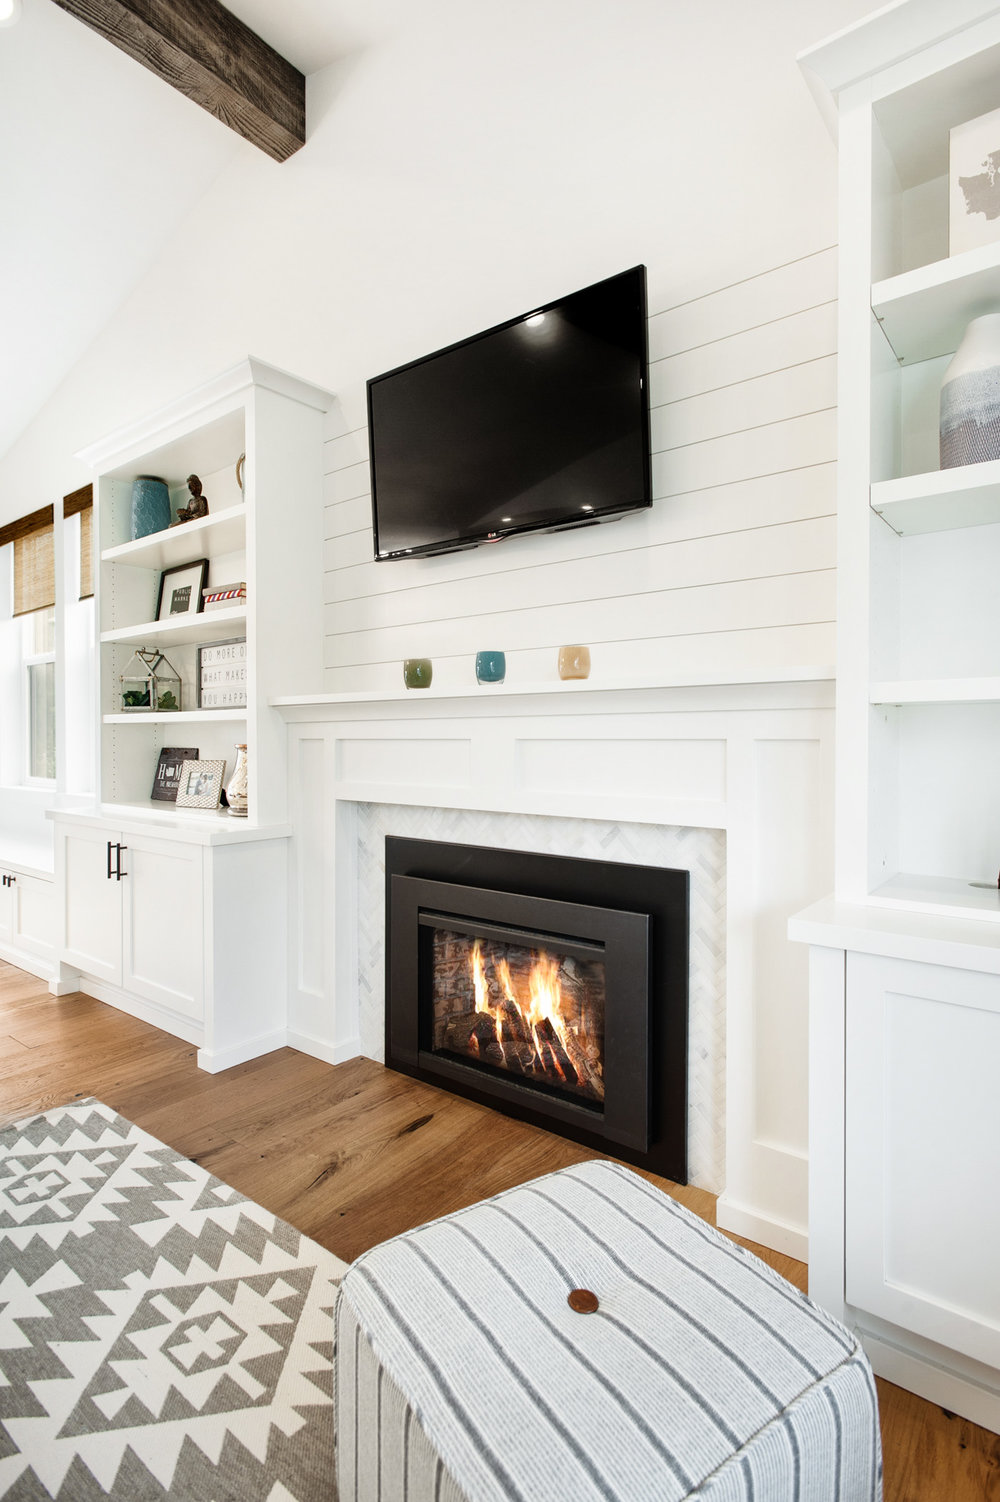 Switching from a wood burning to a gas fireplace was a game changer. It makes the space so much cozier and energy efficient!